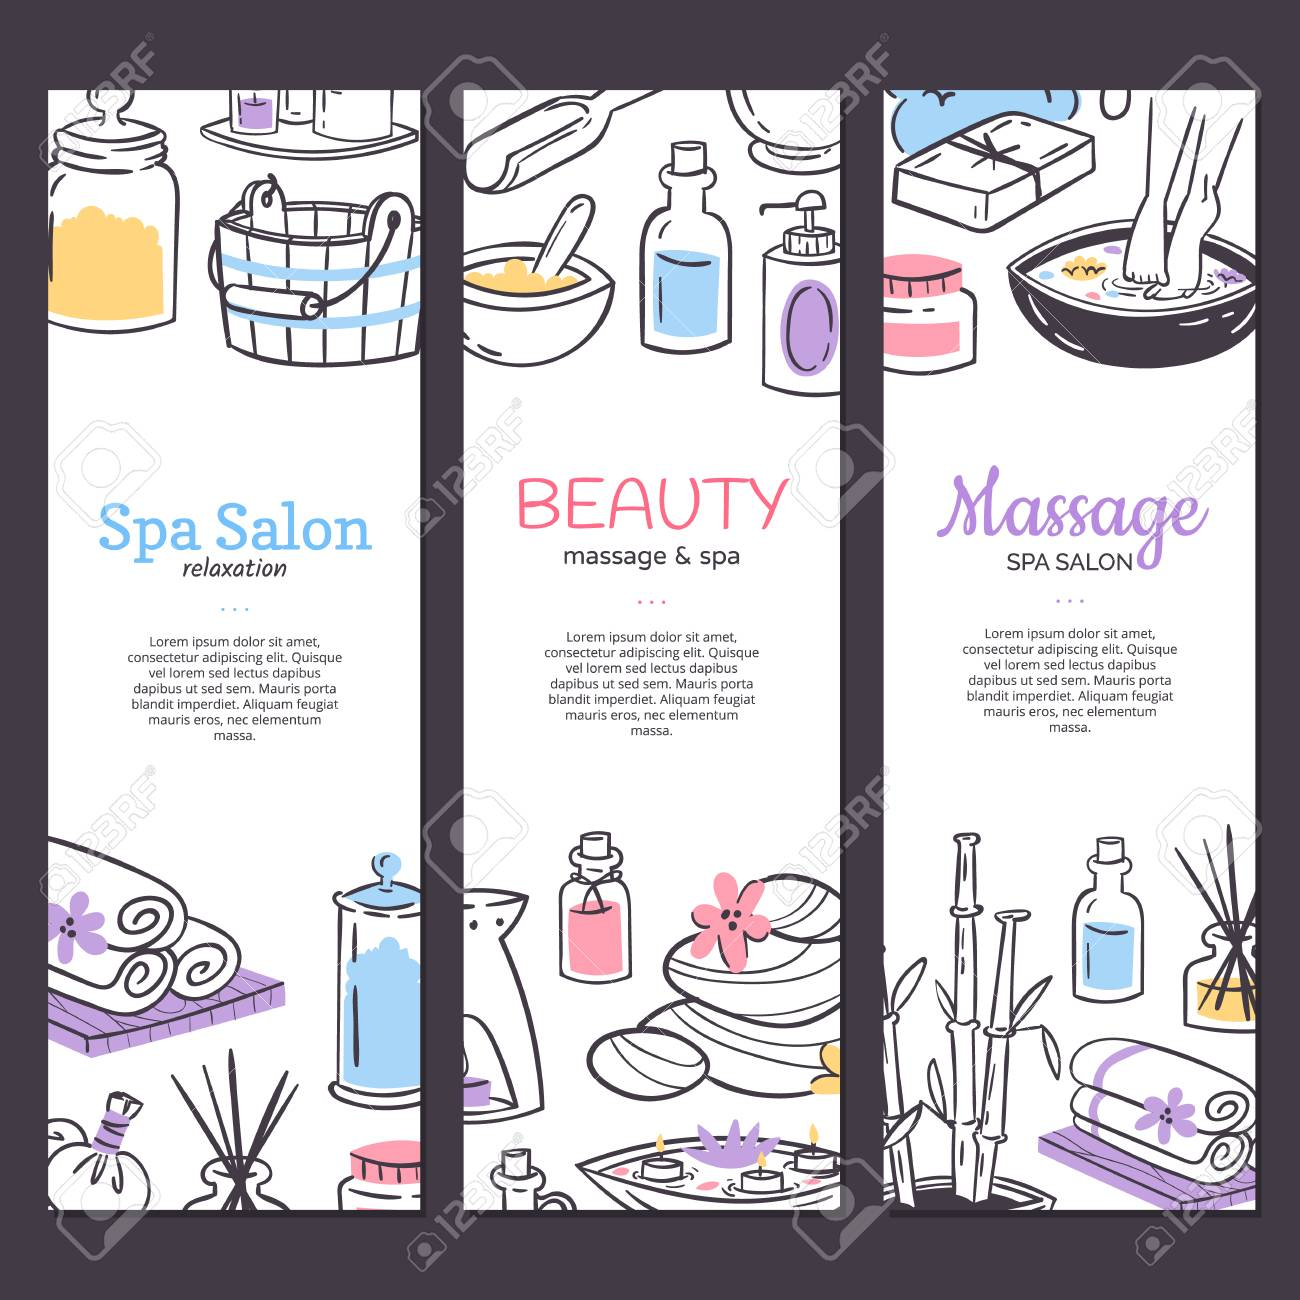 Spa Treatment Banner Background Design For Cosmetics Store Spa Royalty Free Cliparts Vectors And Stock Illustration Image 116657016